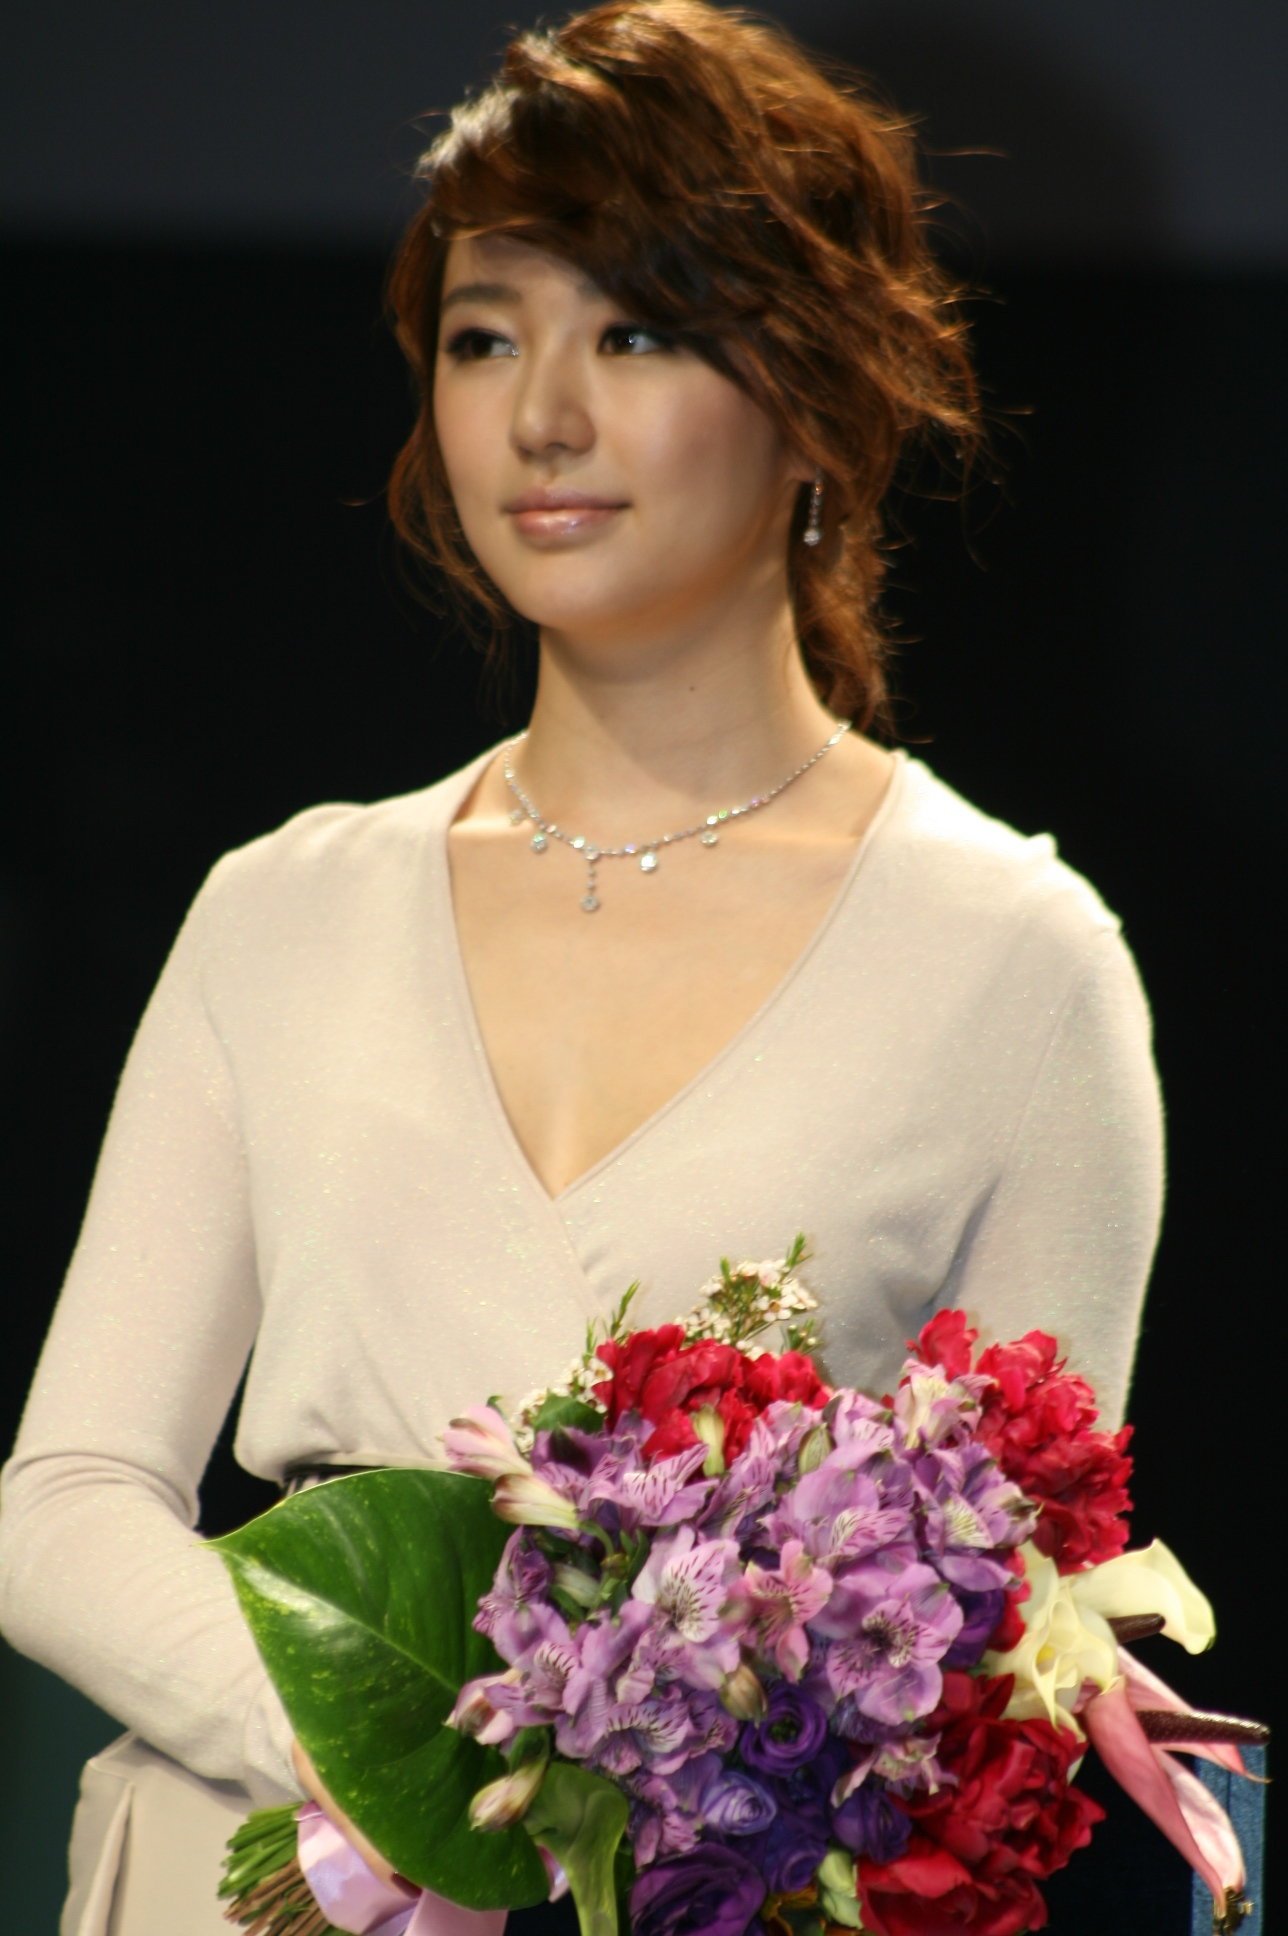 Photo of Yoon Eun Hye